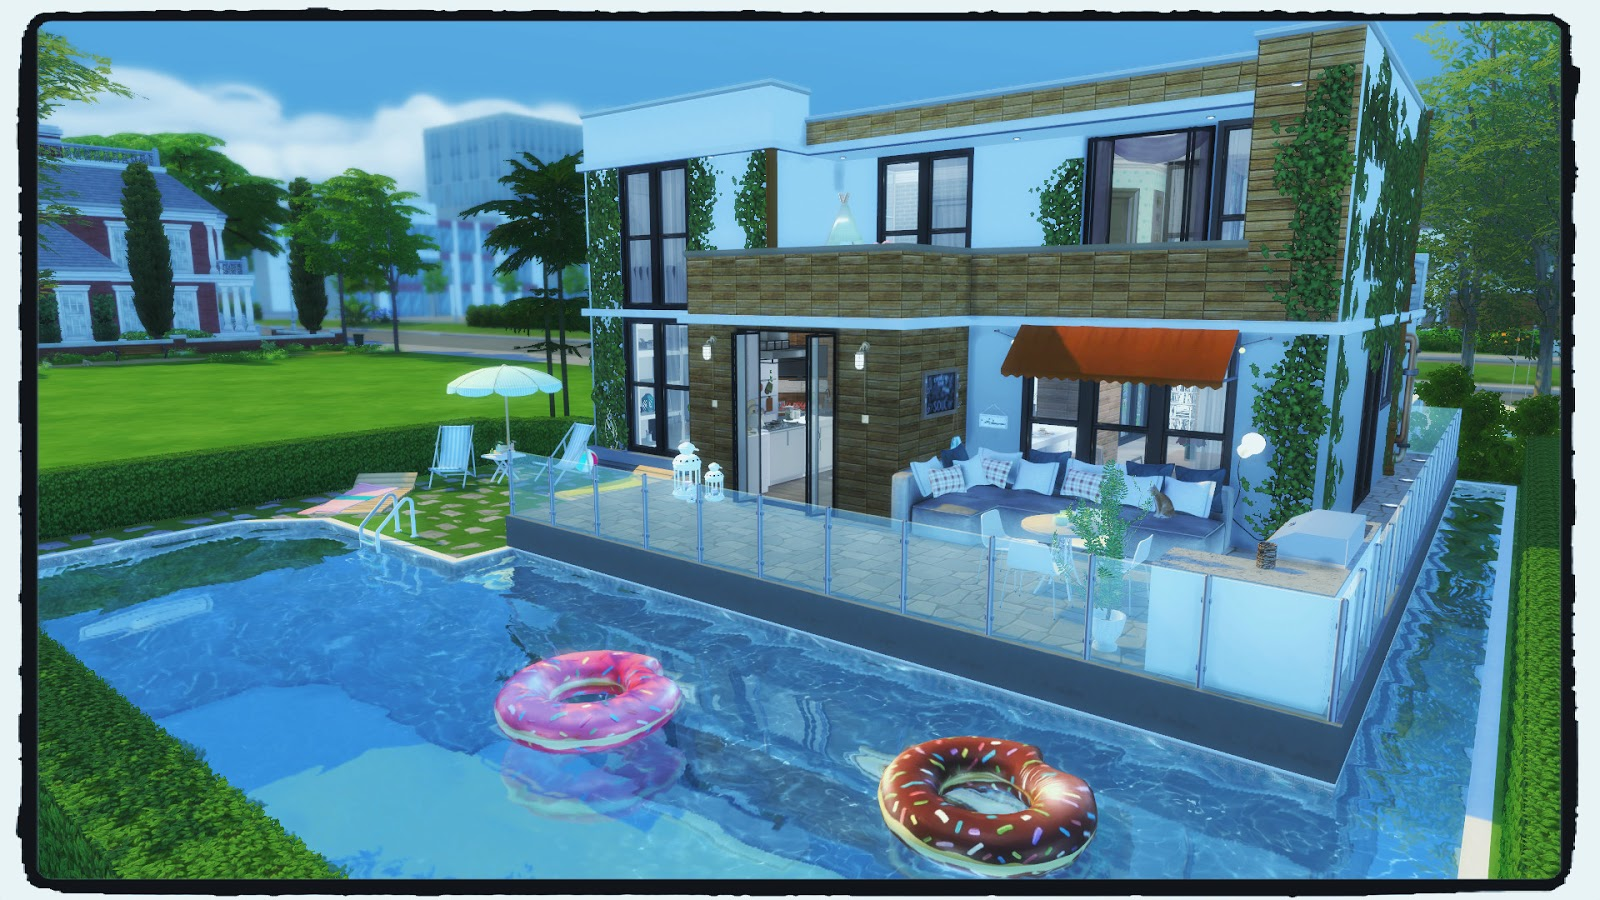 Sims 4 building on newcrest modern house with pool for How to build a modern home